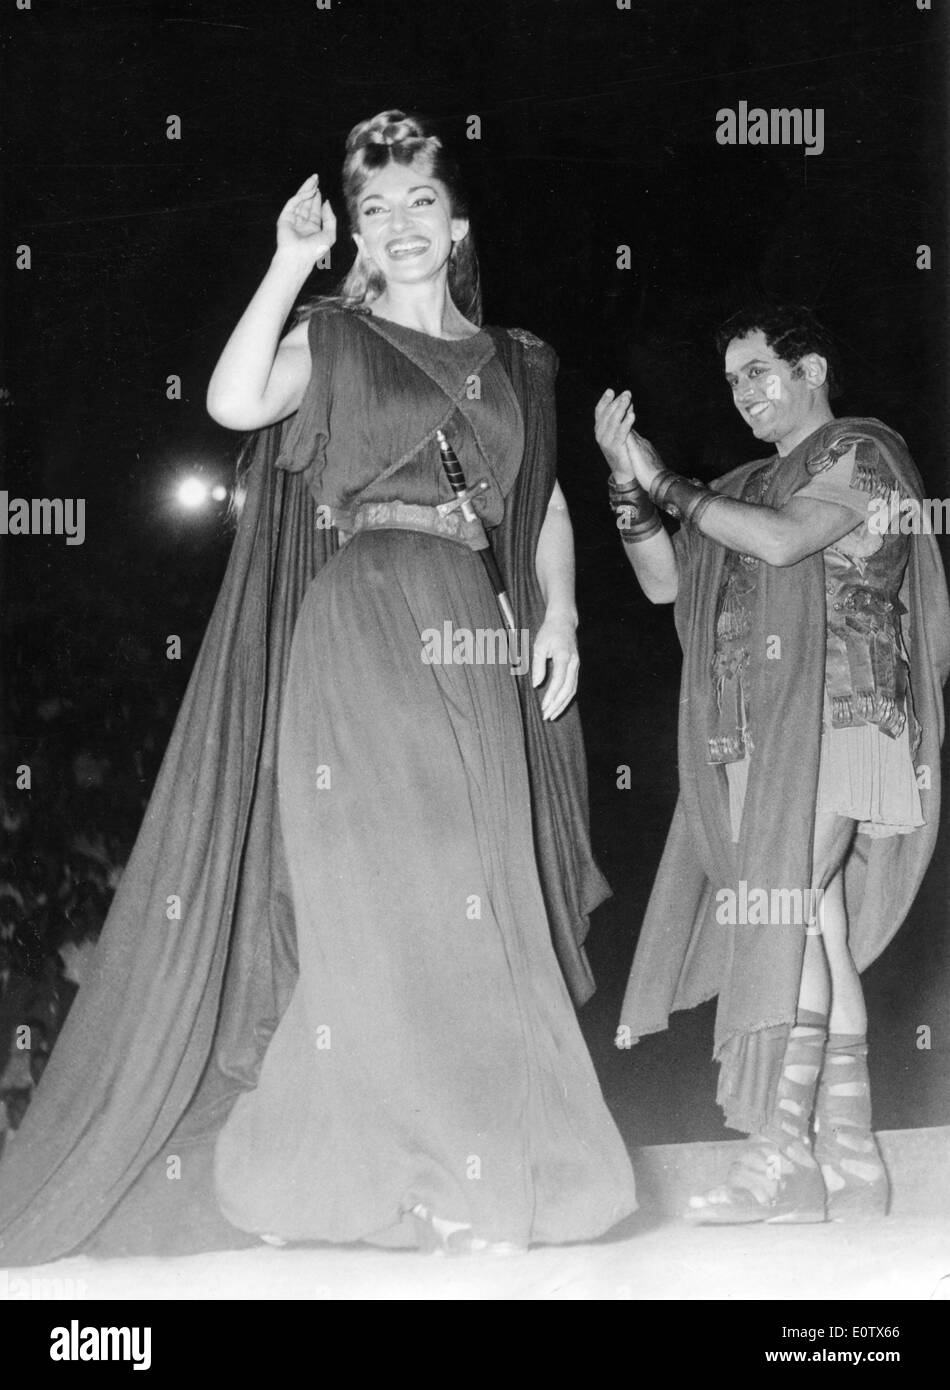 Singers Maria Callas and Mirto Picchi on stage after performing 'Norma' - Stock Image